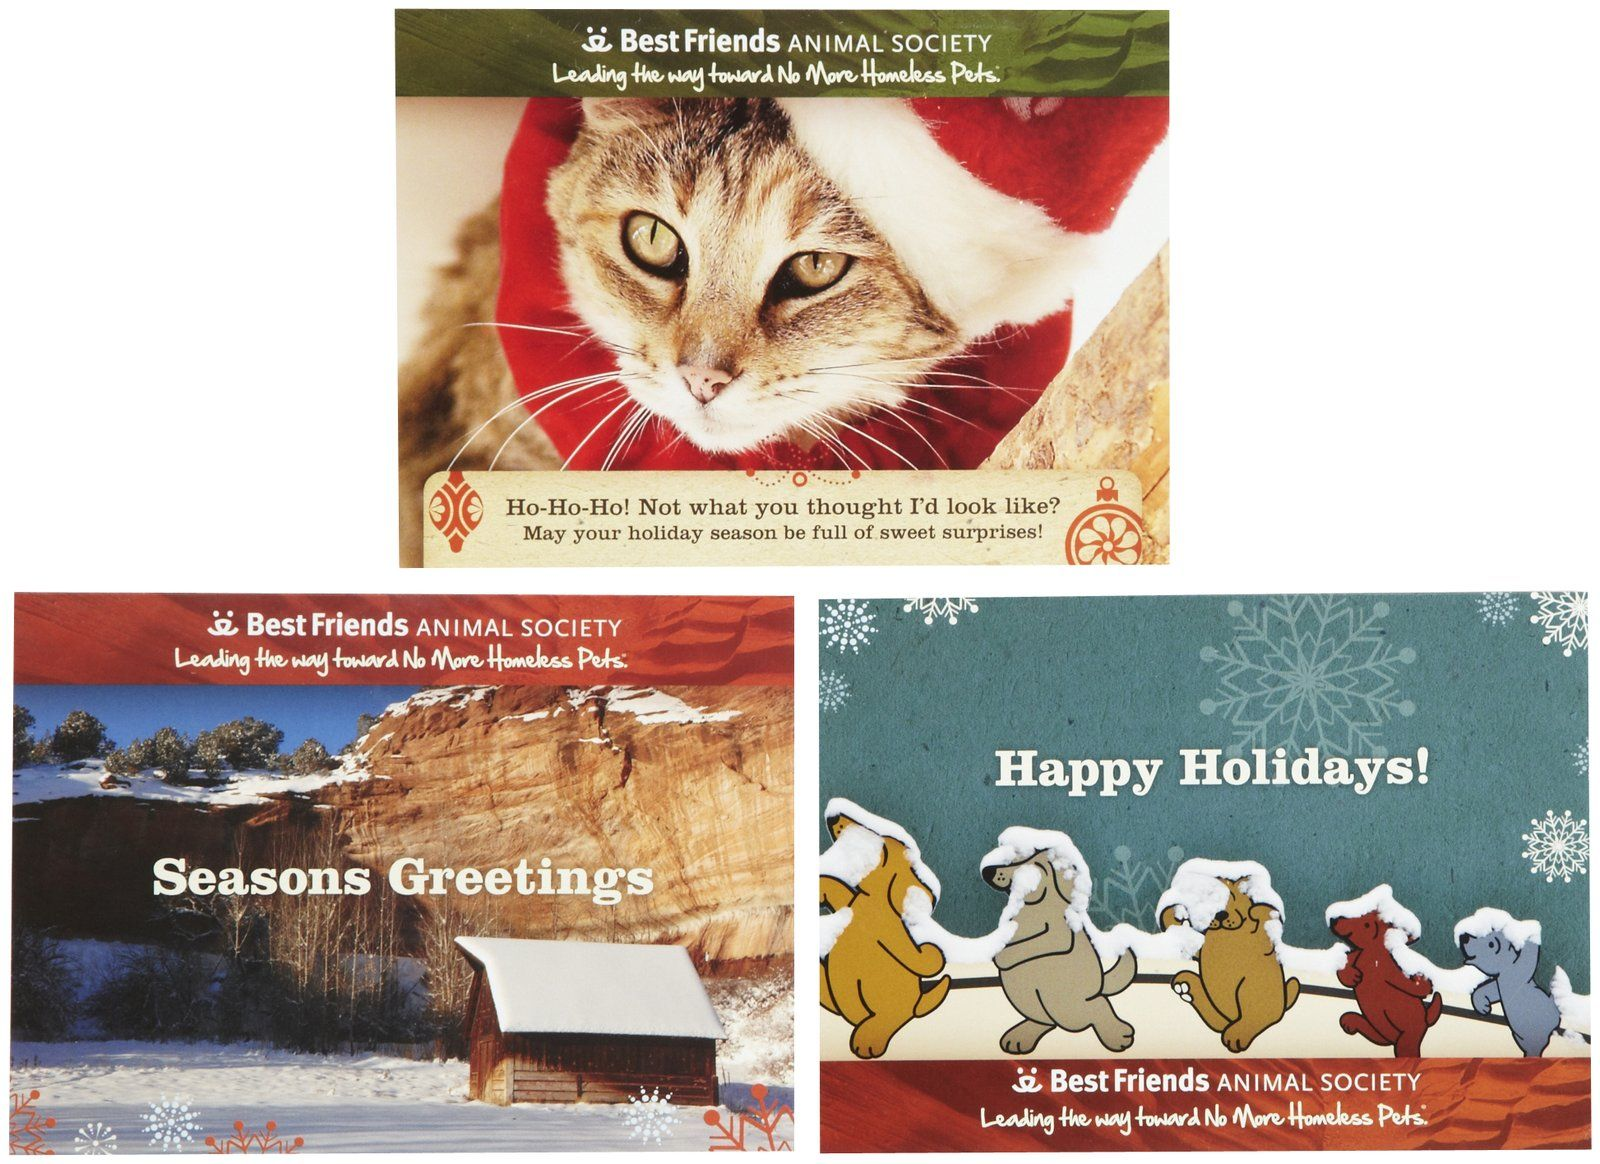 Best Friends Animal Society Holiday Cards Free Shipping Free Holiday Cards Holiday Cards Holiday Greeting Cards